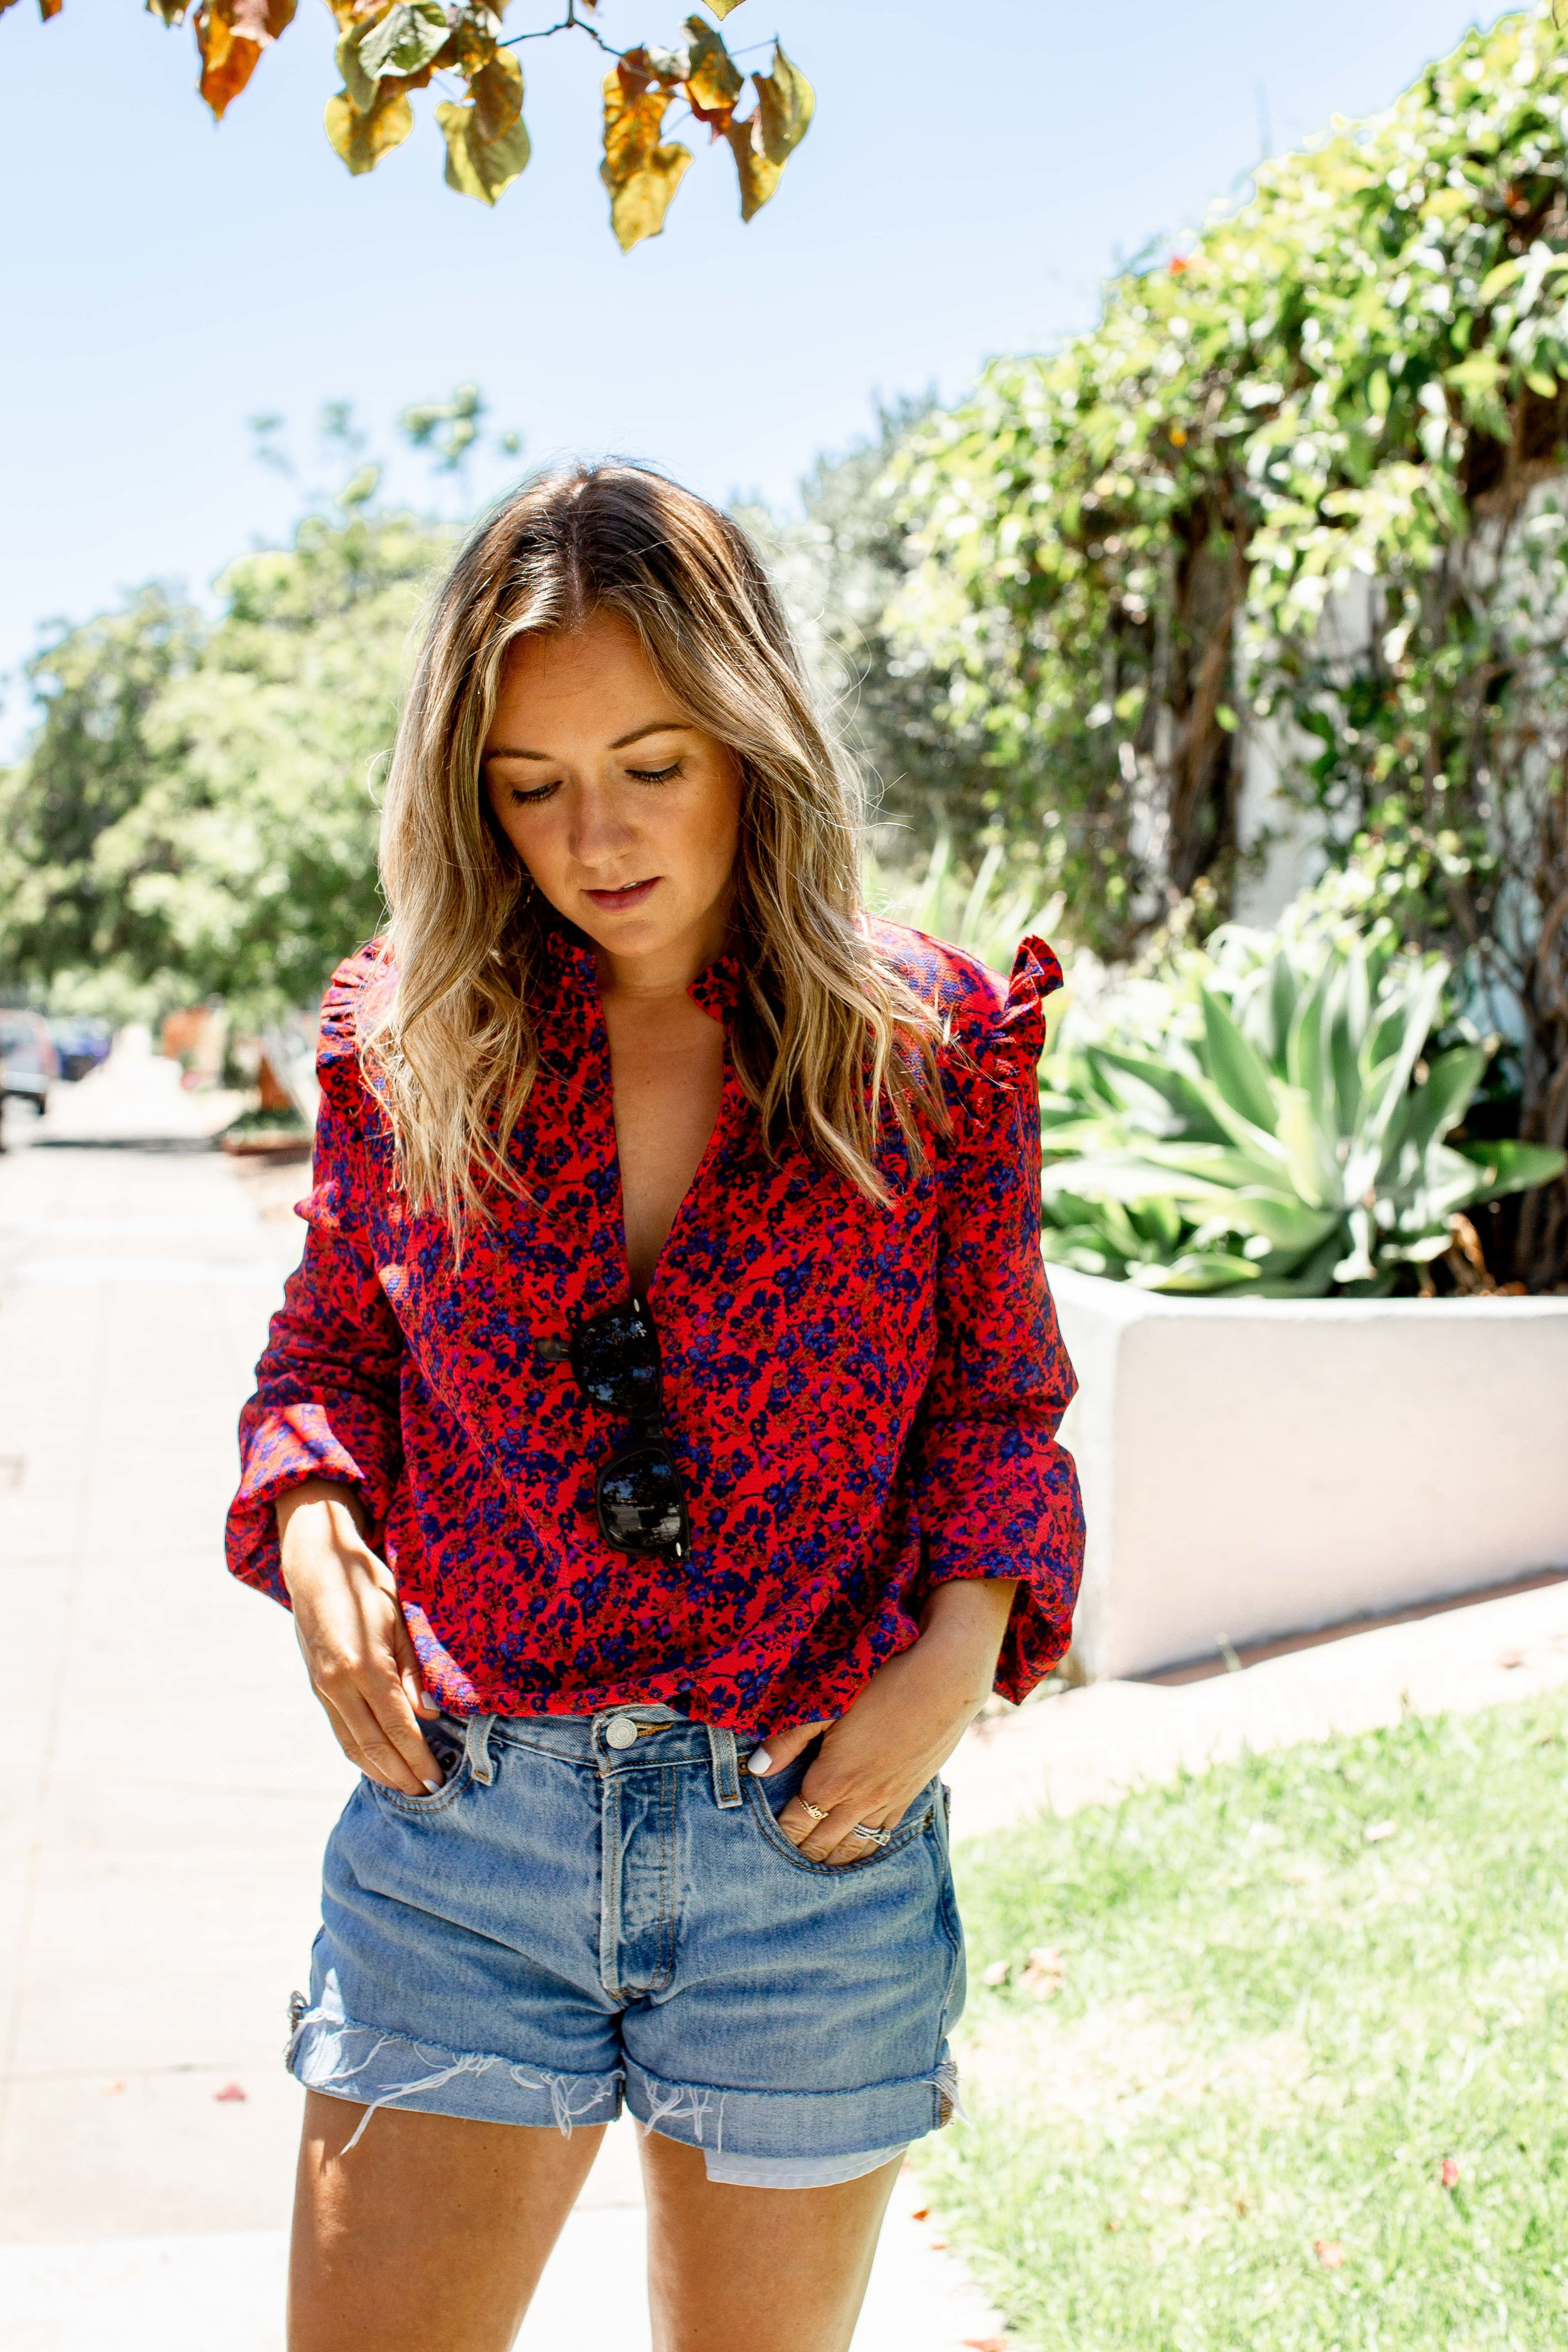 fizz-fade-red-floral-blouse-12.jpg